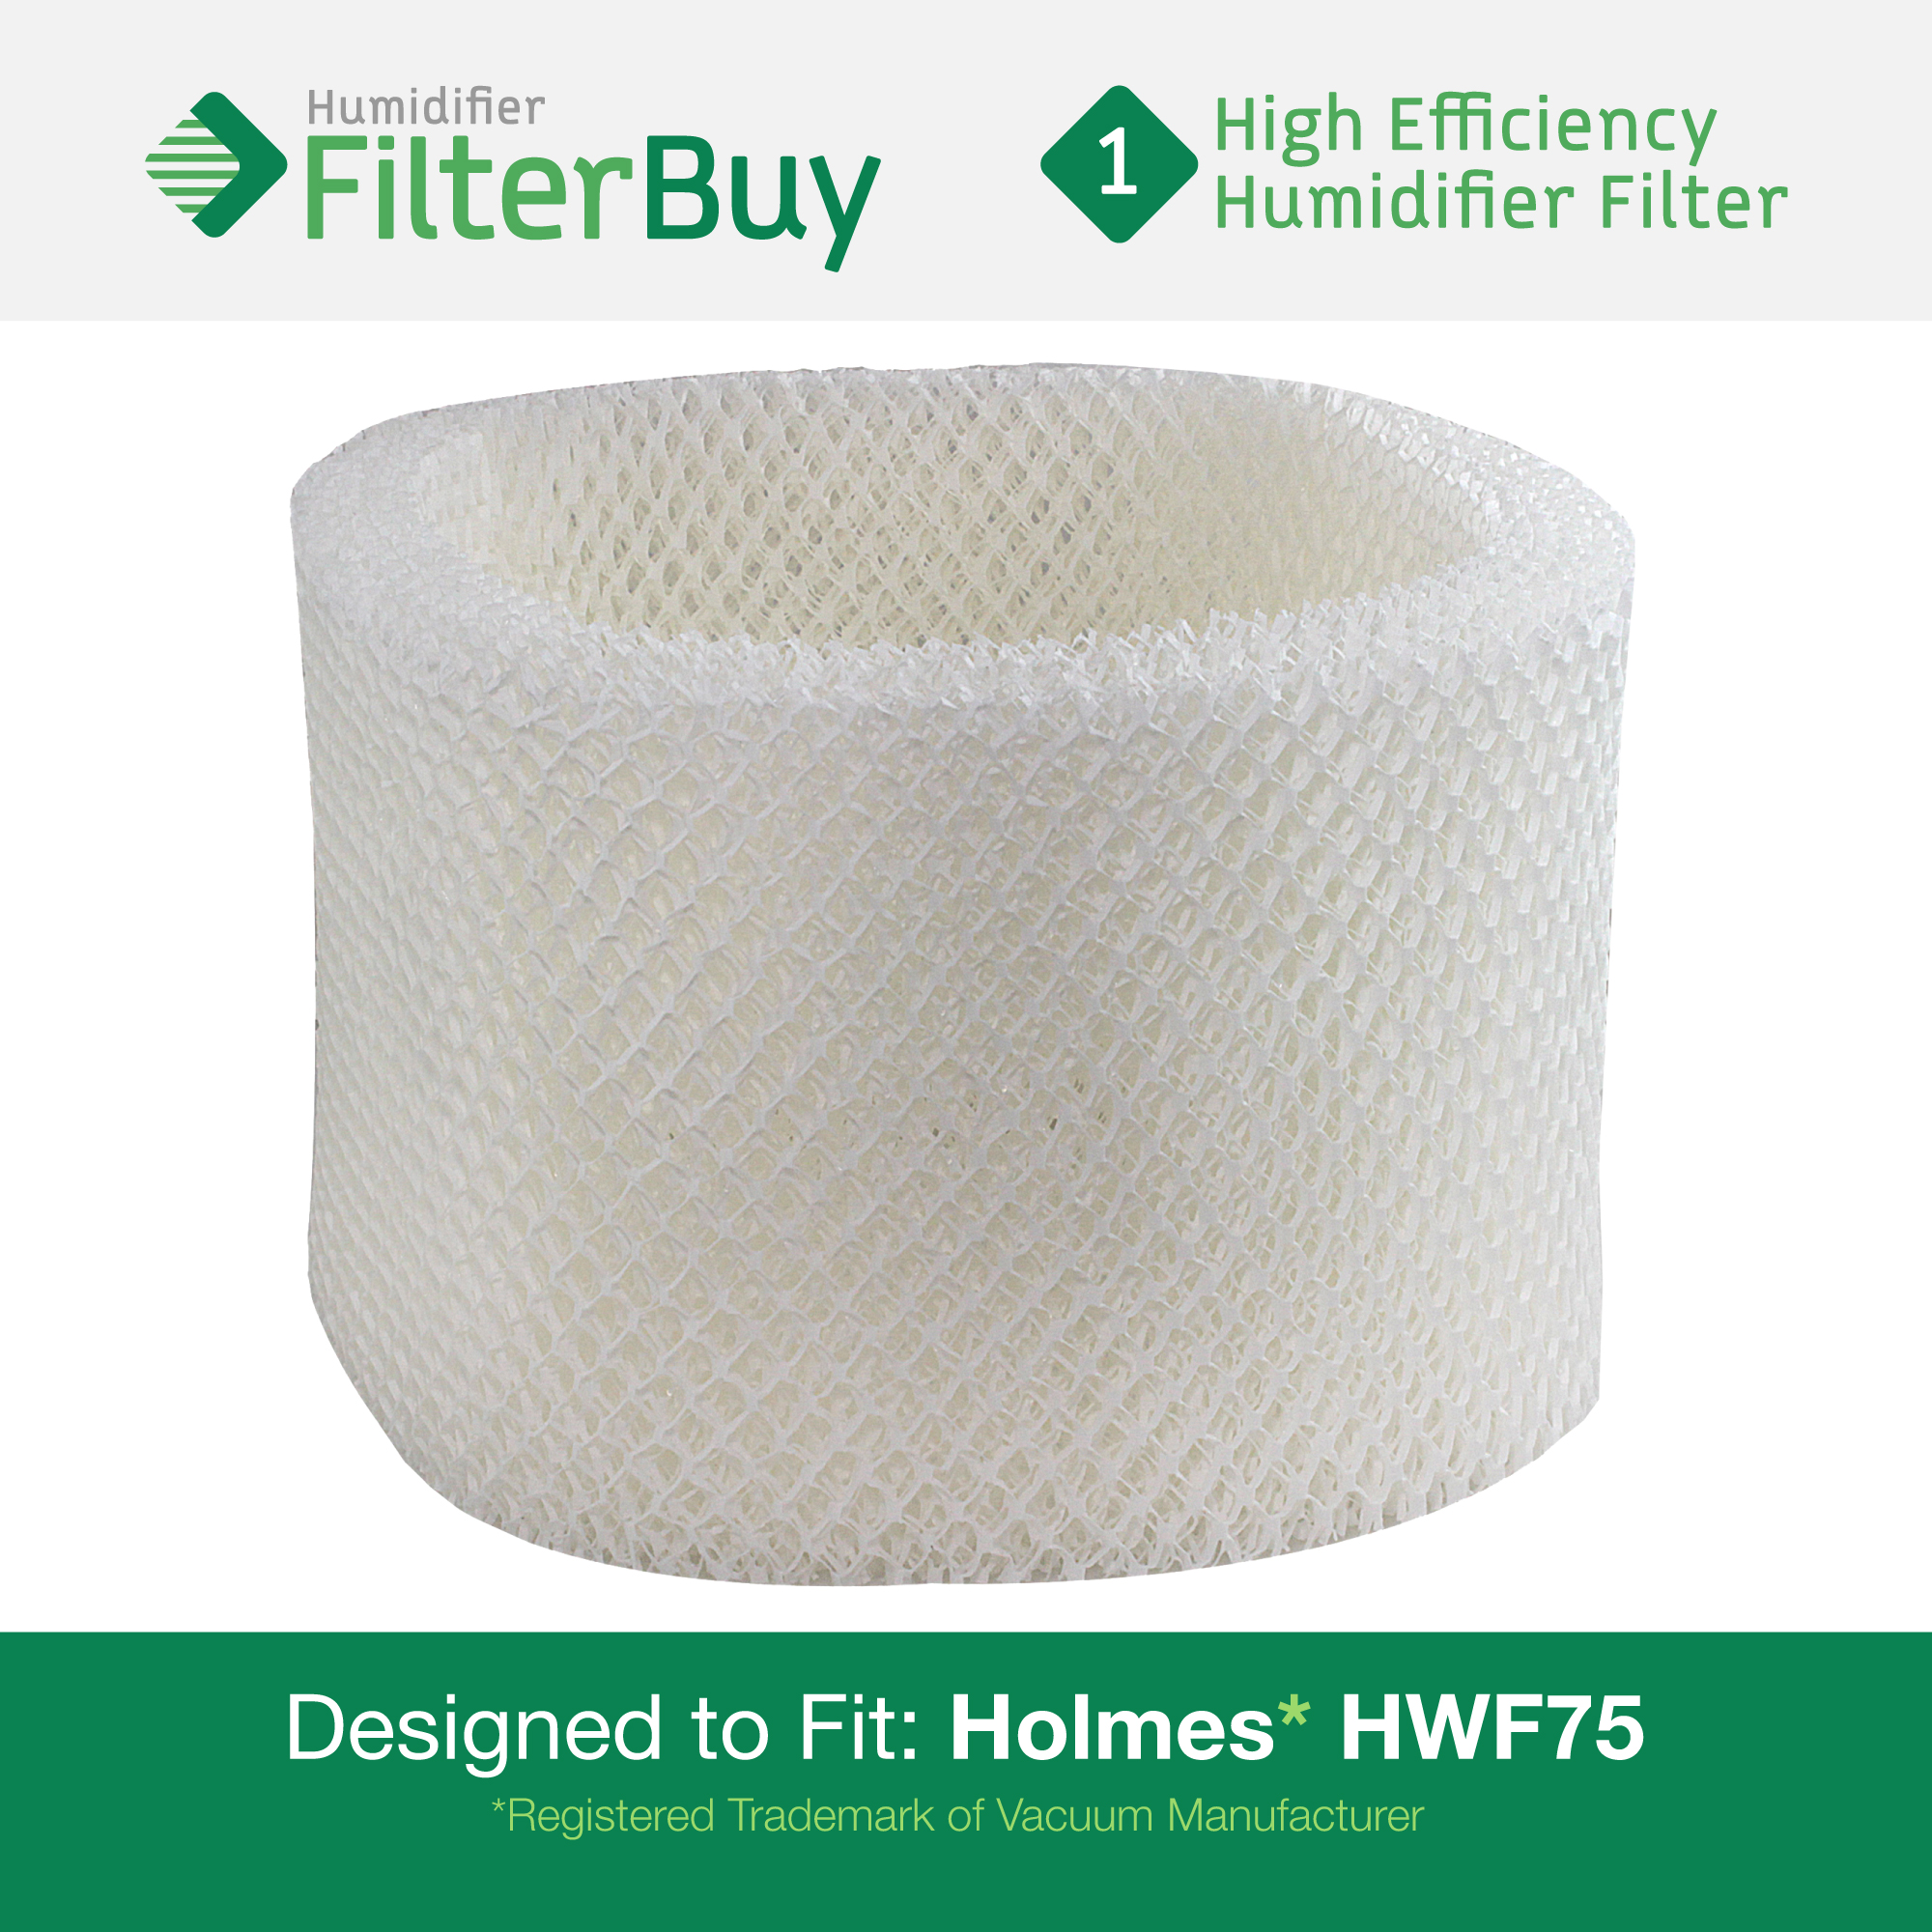 HWF75 HWF72 Holmes Touch Point Sunbeam Humidifier Replacement Filter  #088150